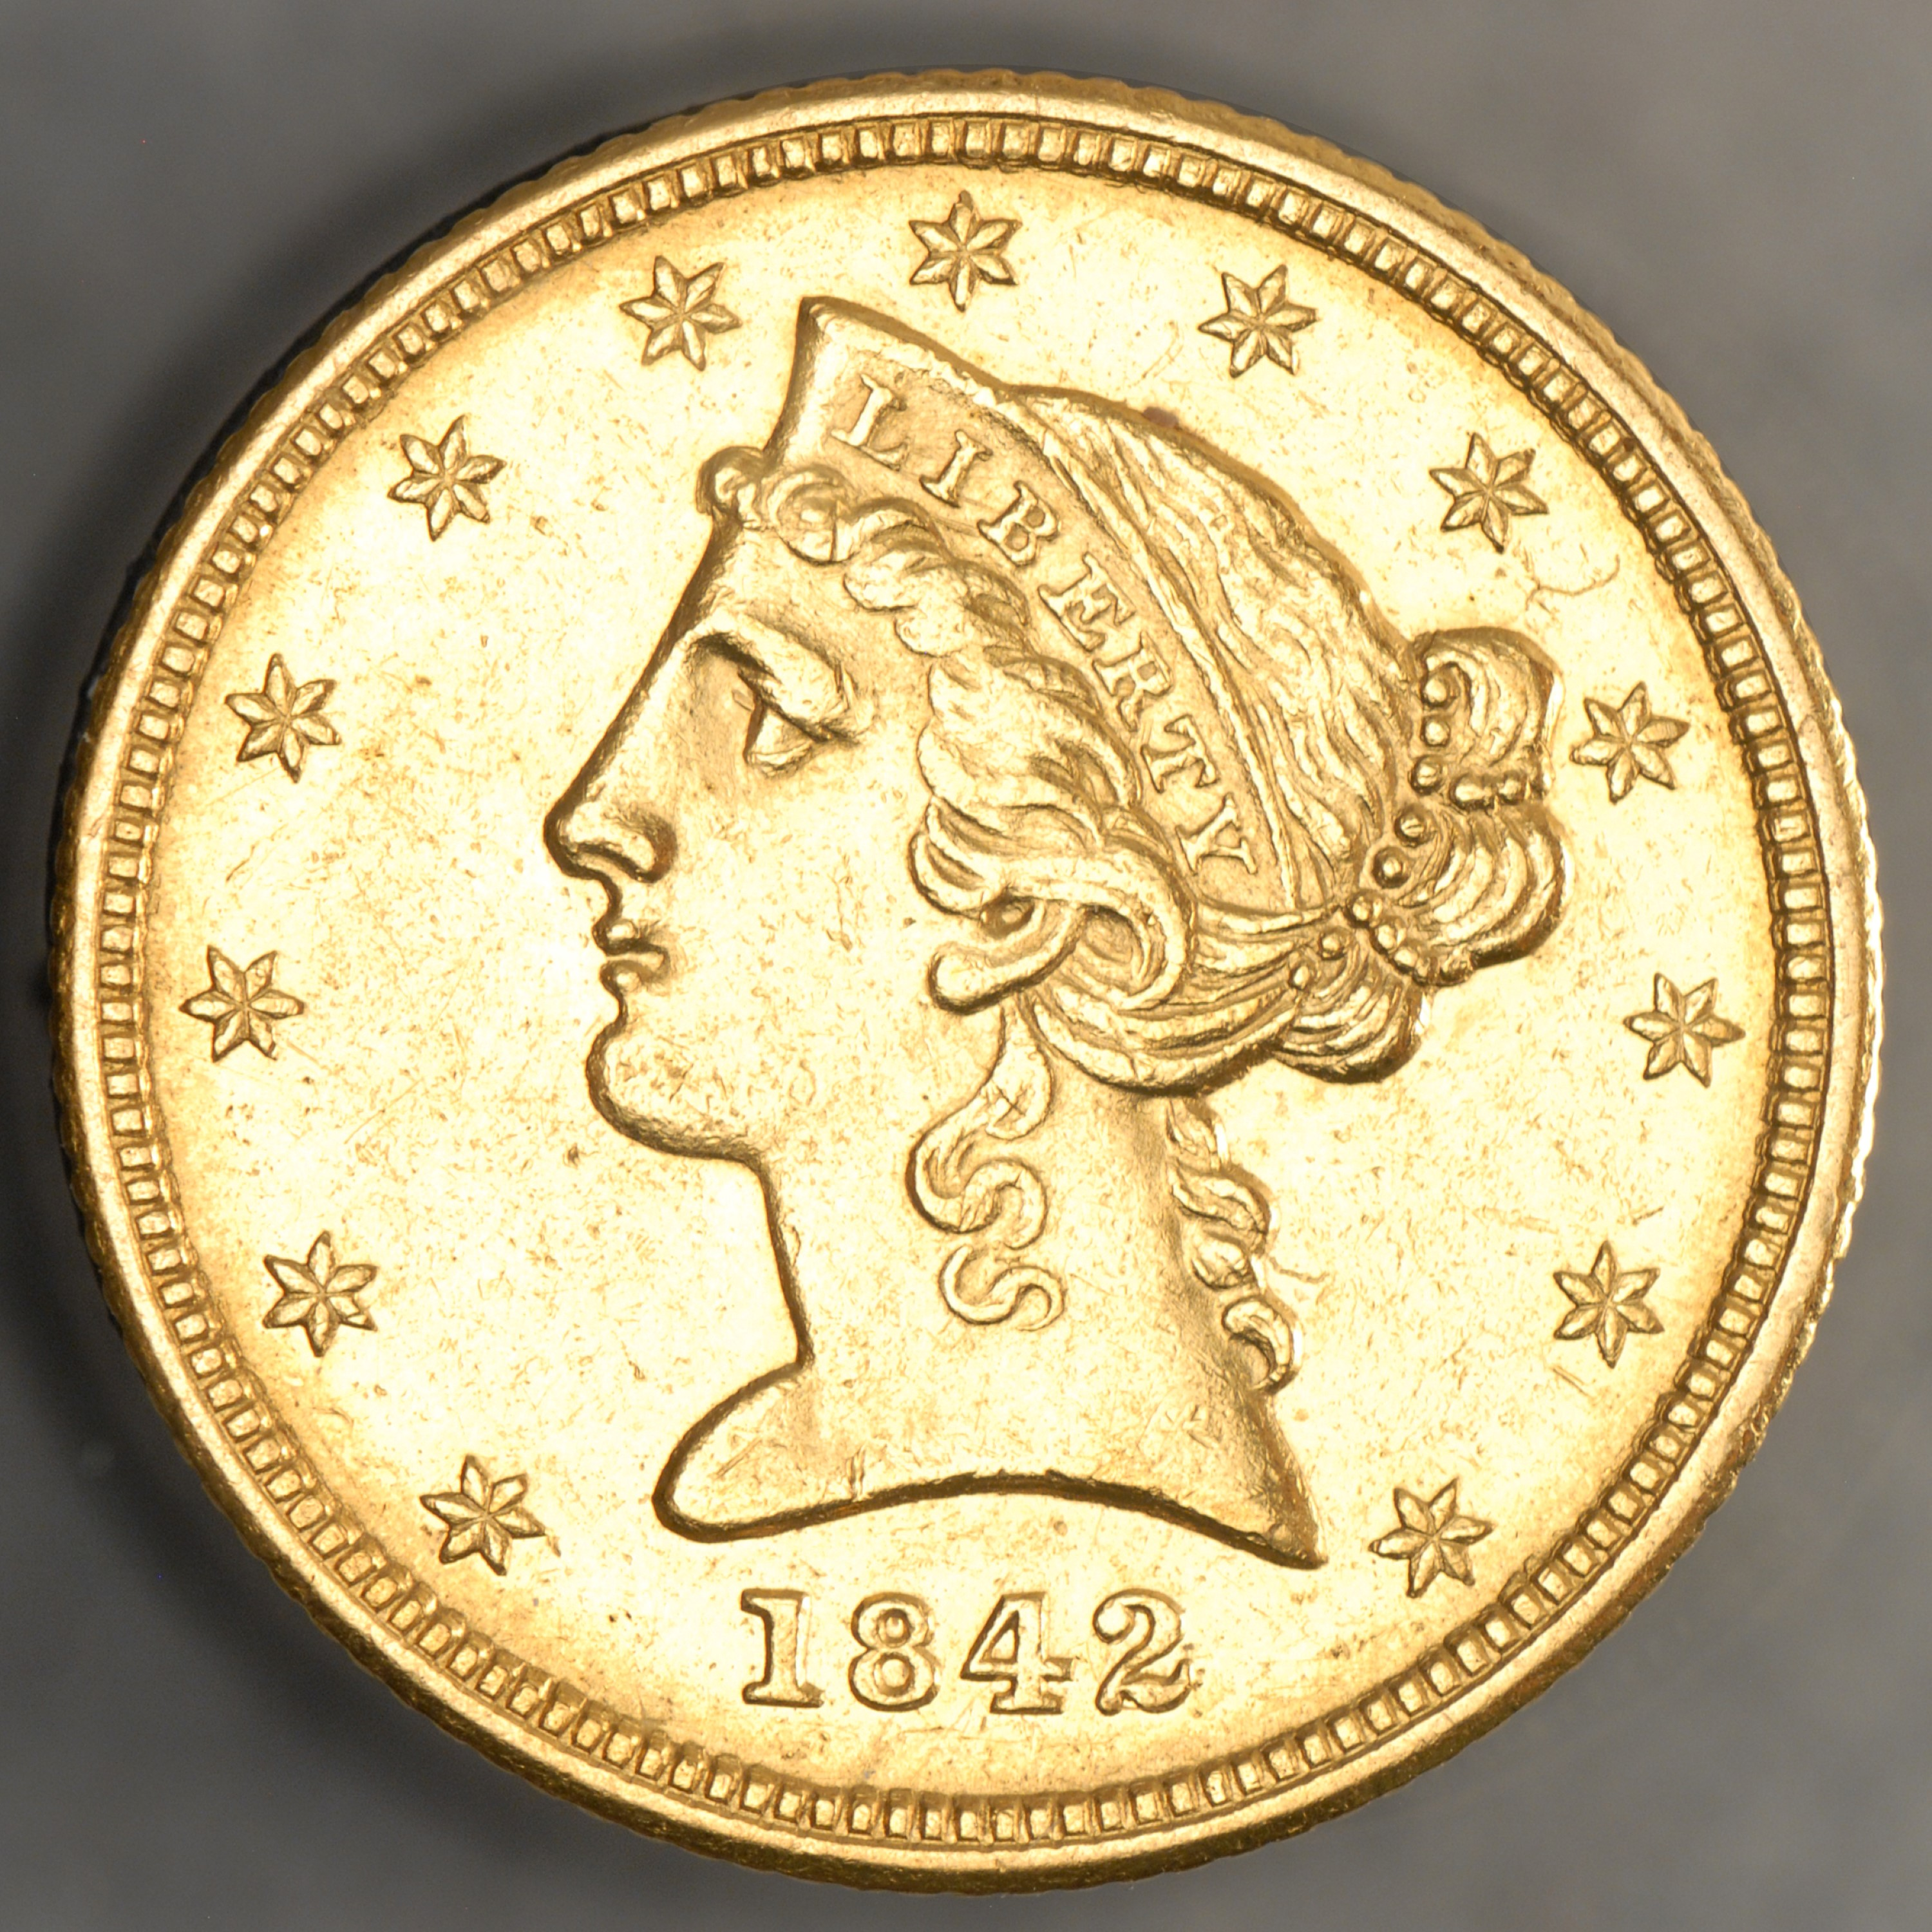 Complimentary Appraisals For The Public And See 1 Billion Of Historic Money On Display In